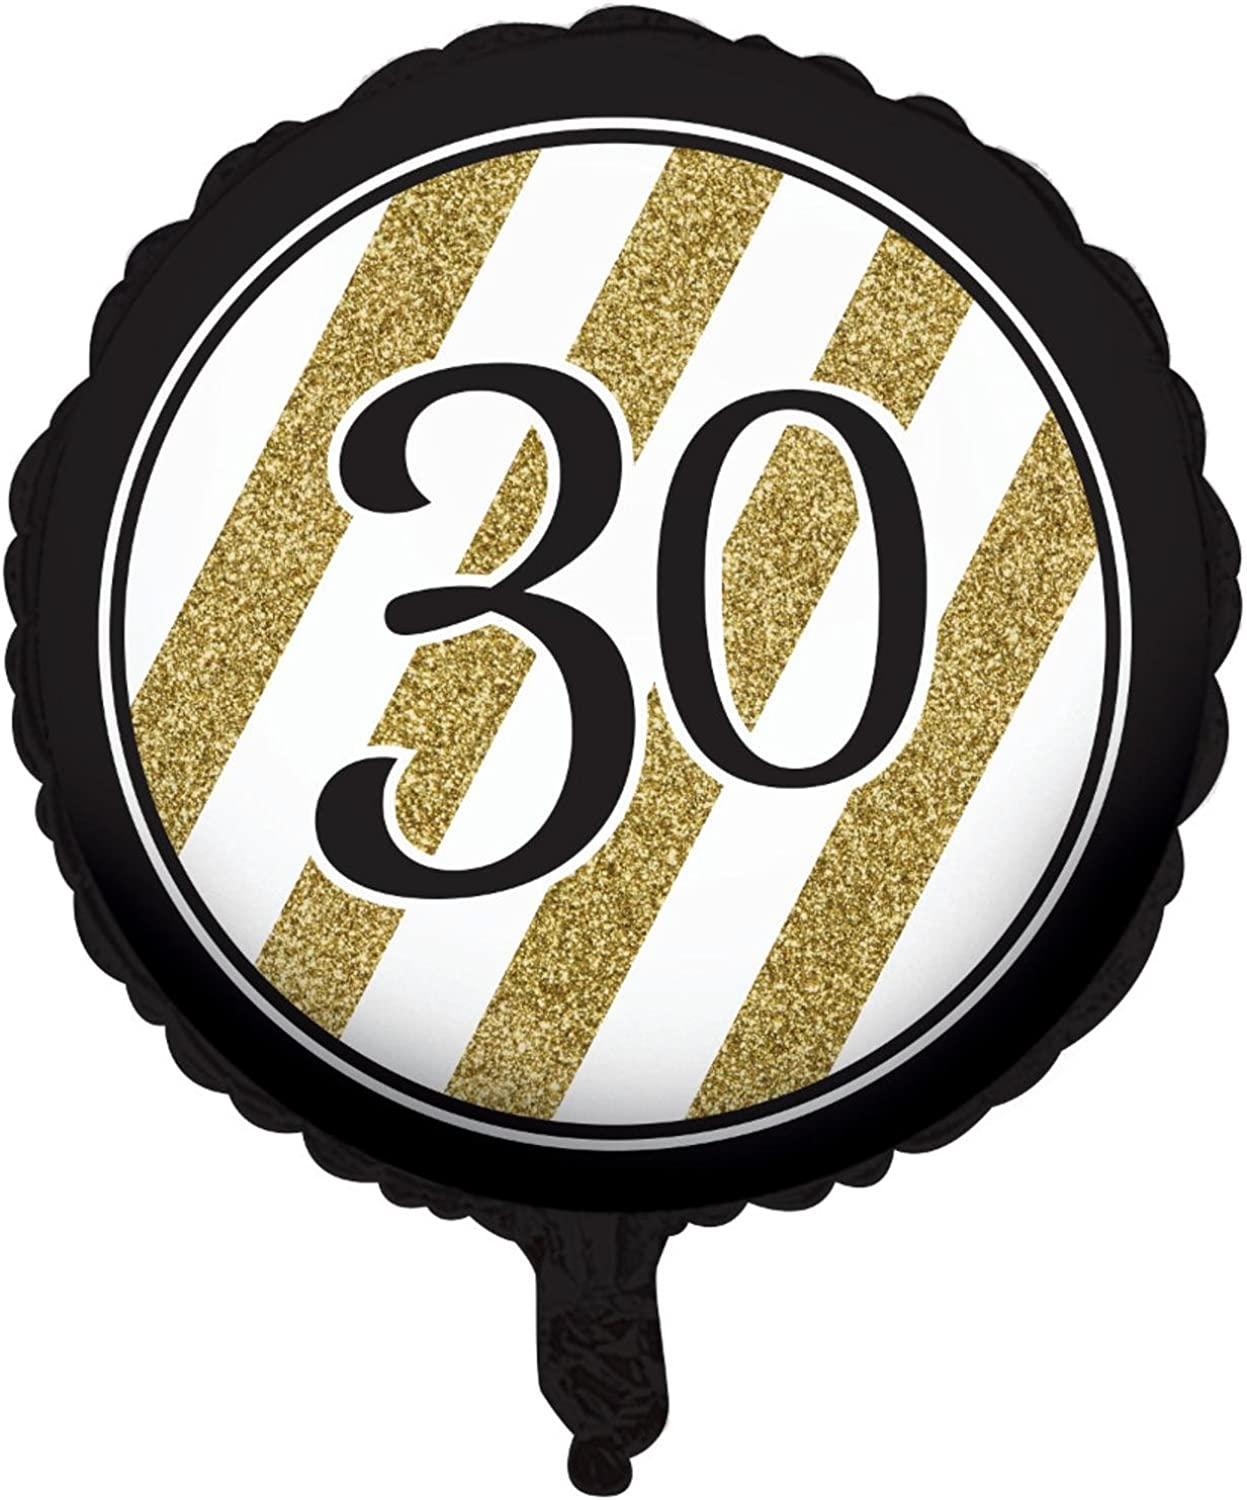 Pack of 10 Black & gold Metallic 30  Birthday or Anniversary Foil Party Balloons